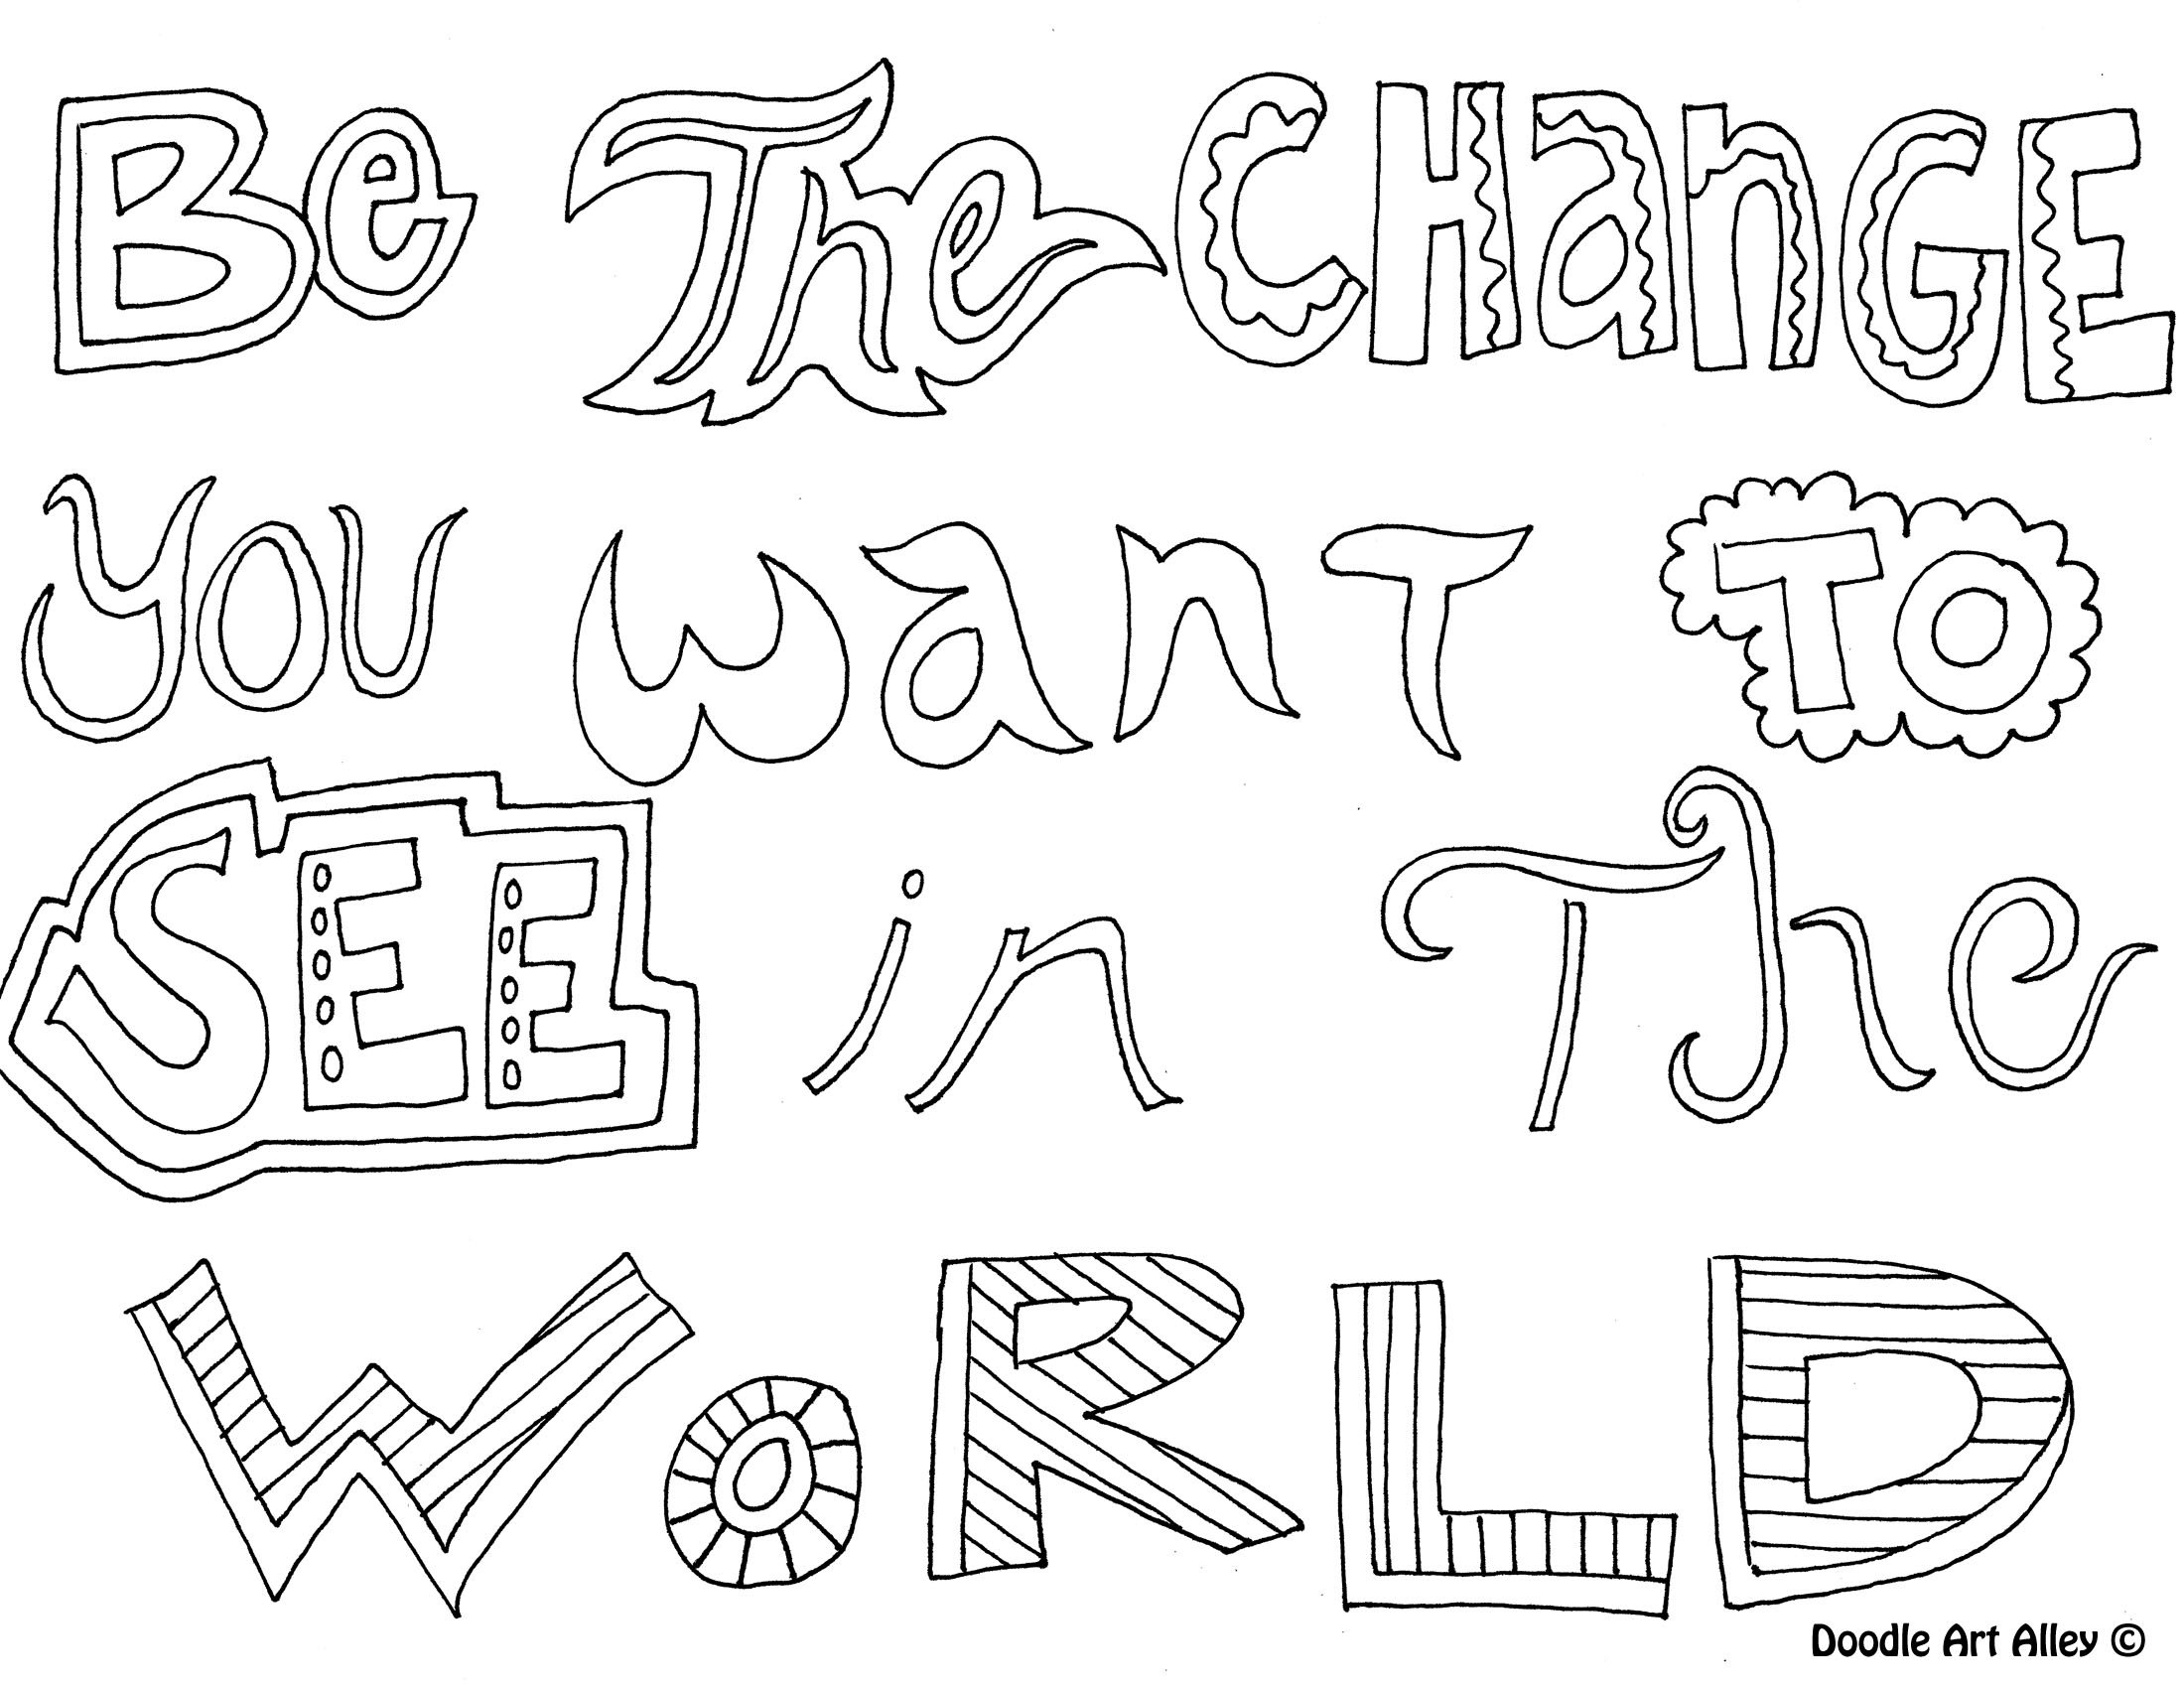 Printable coloring pages for youth - Printable Coloring Pages For Youth Spiritual Quotes For Youth Printables